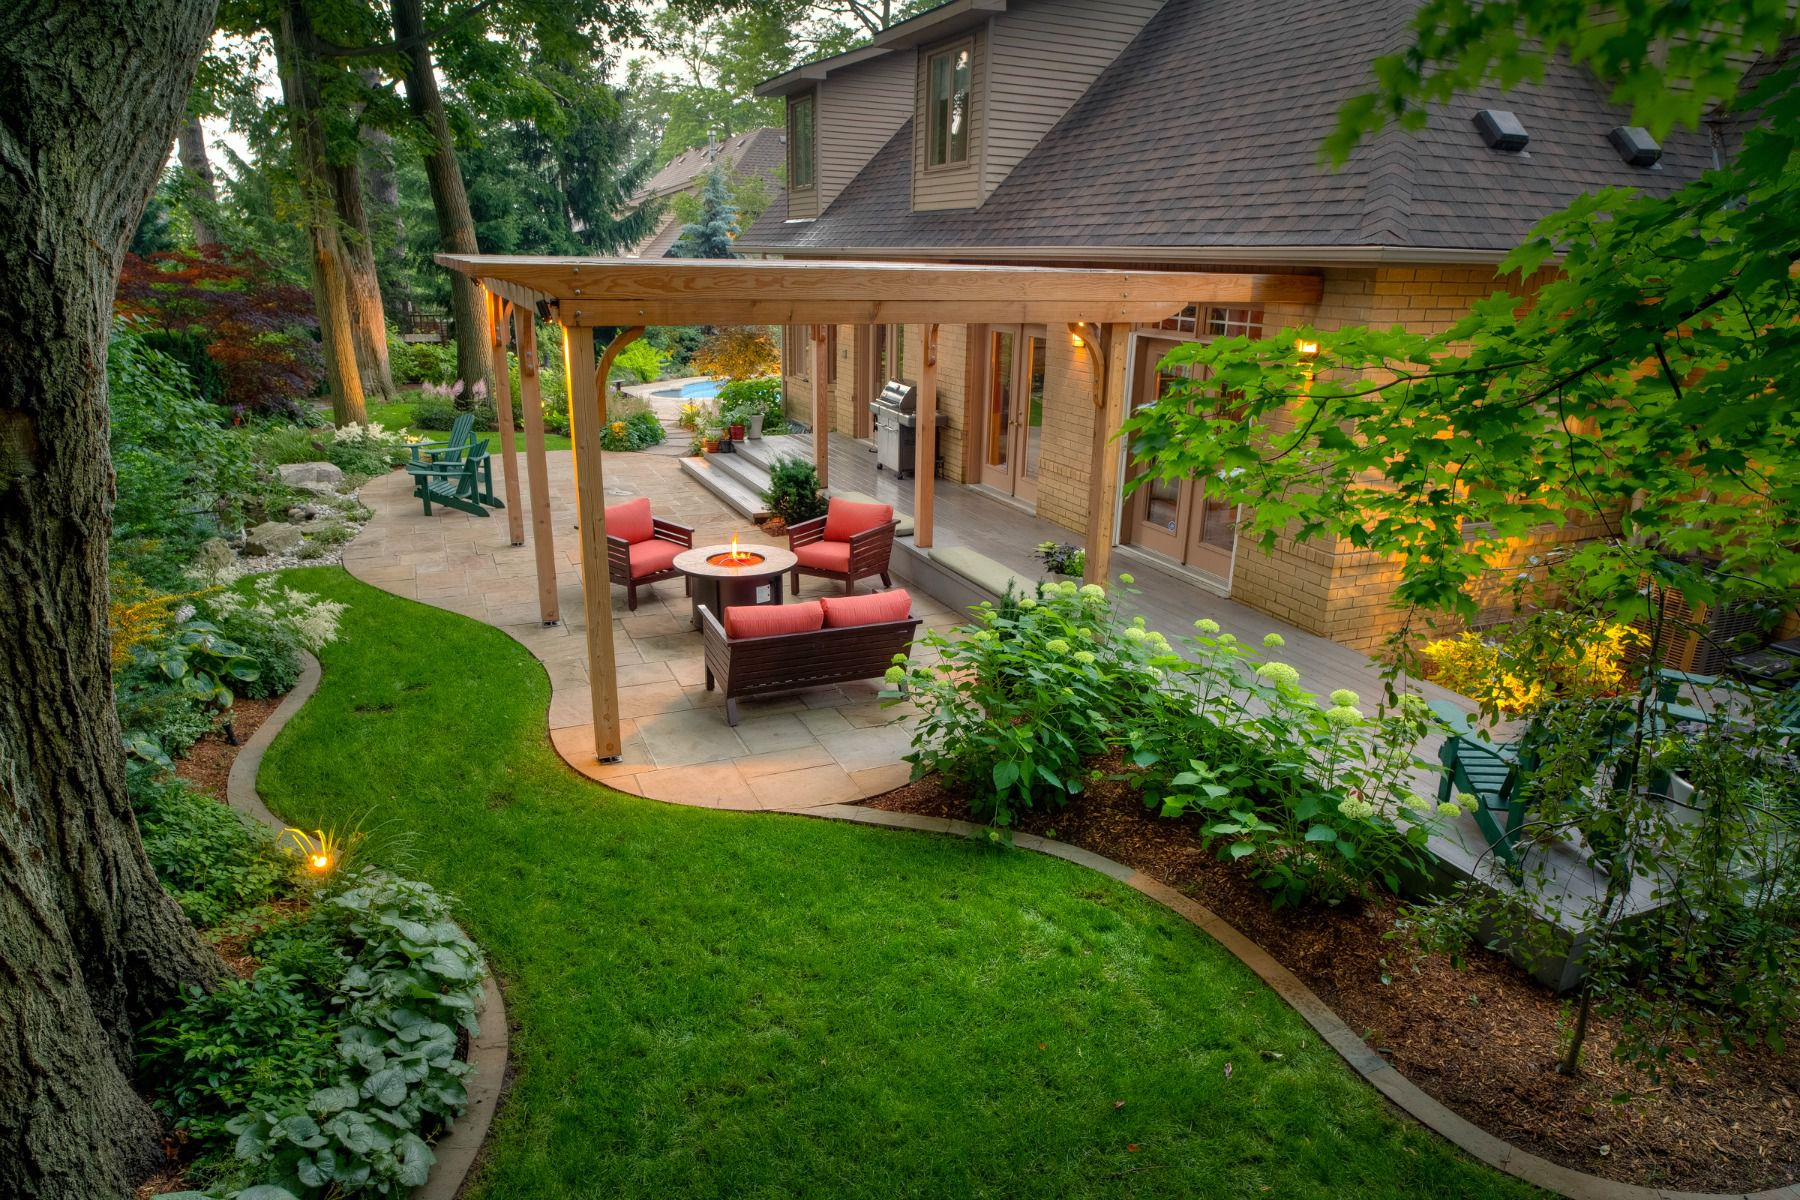 50 Backyard Landscaping Ideas throughout 14 Genius Designs of How to Improve Landscaping A Backyard